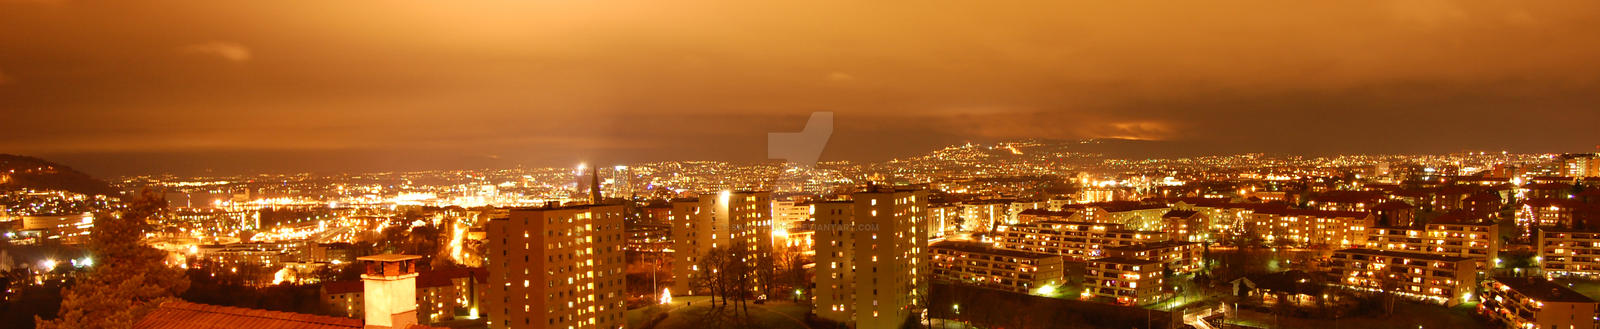 Oslo Panorama at night